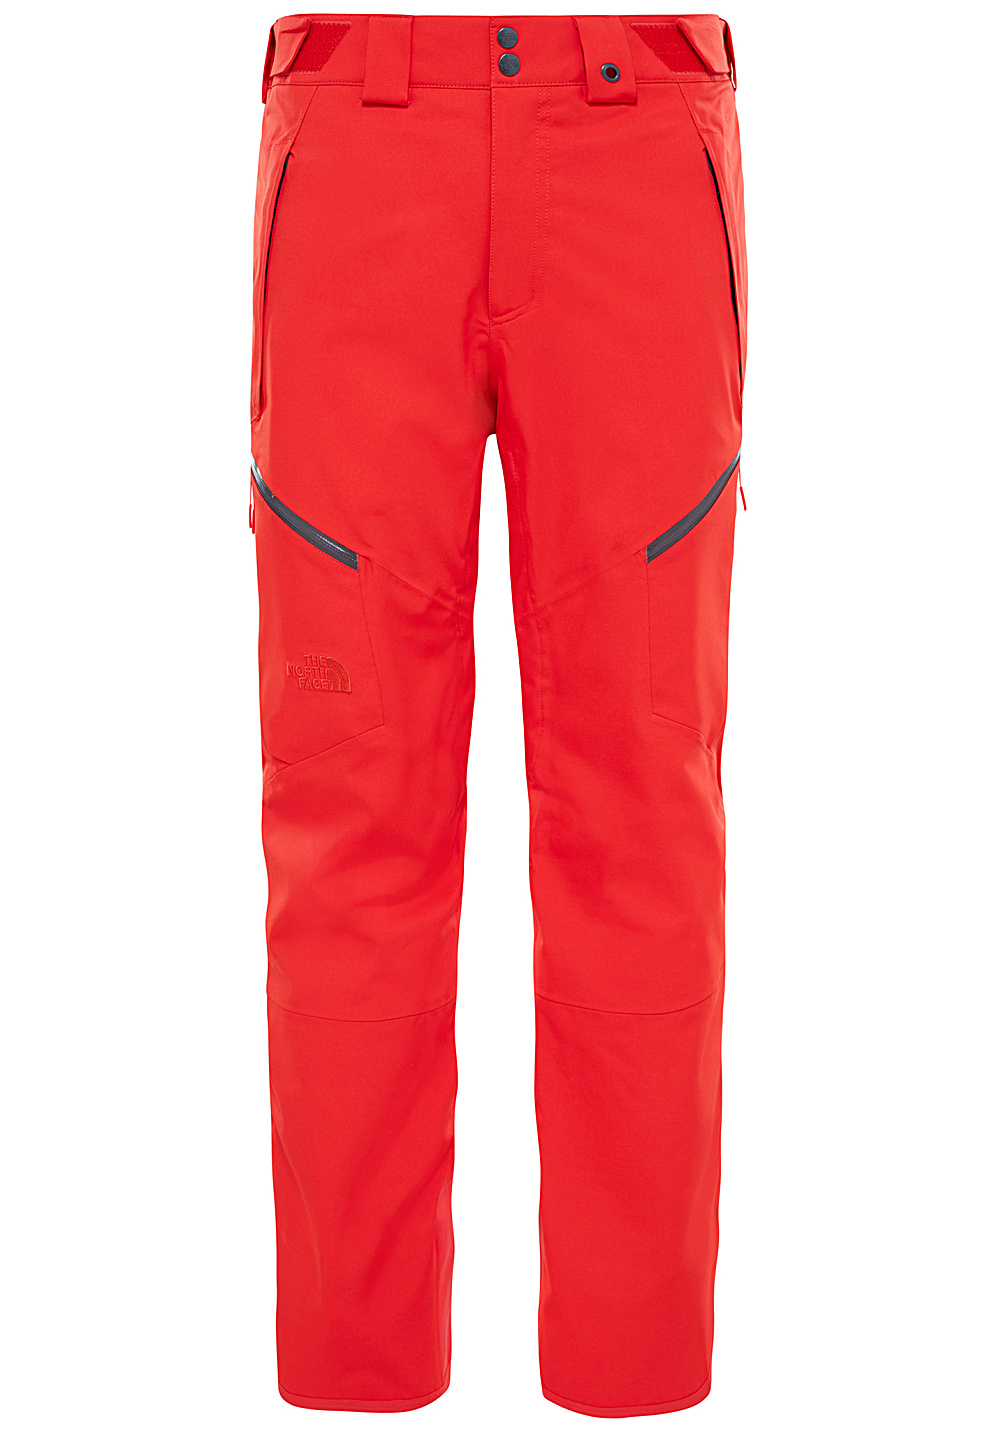 5e2fdfced THE NORTH FACE Chakal - Snowboard Pants for Men - Red - Planet Sports